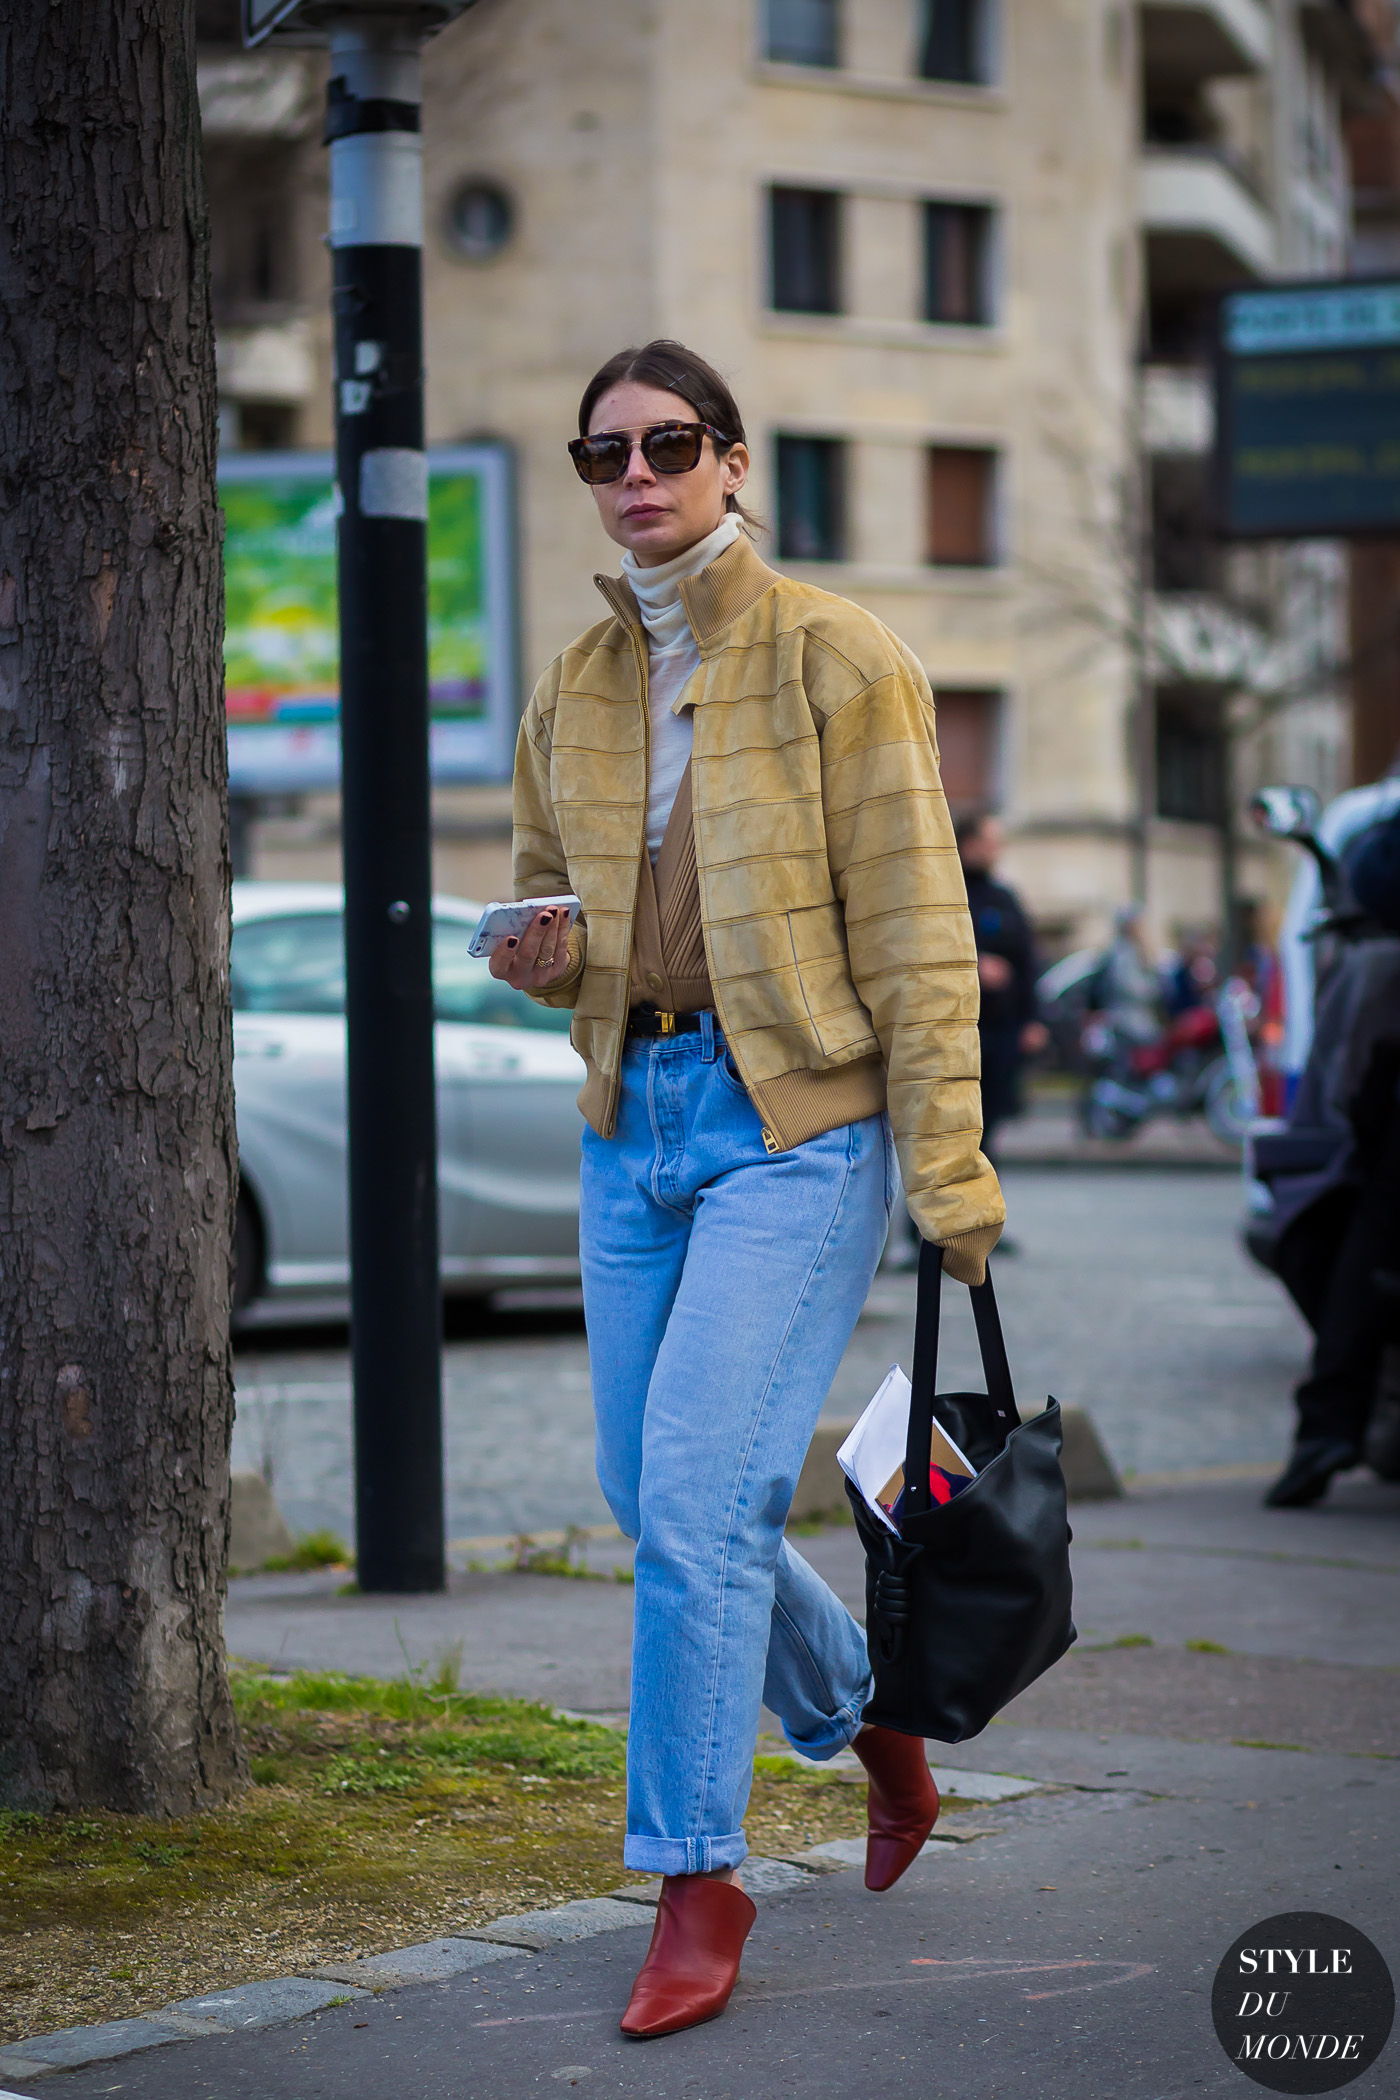 Irina Lakicevic Street Style Street Fashion Streetsnaps by STYLEDUMONDE Street Style Fashion Photography